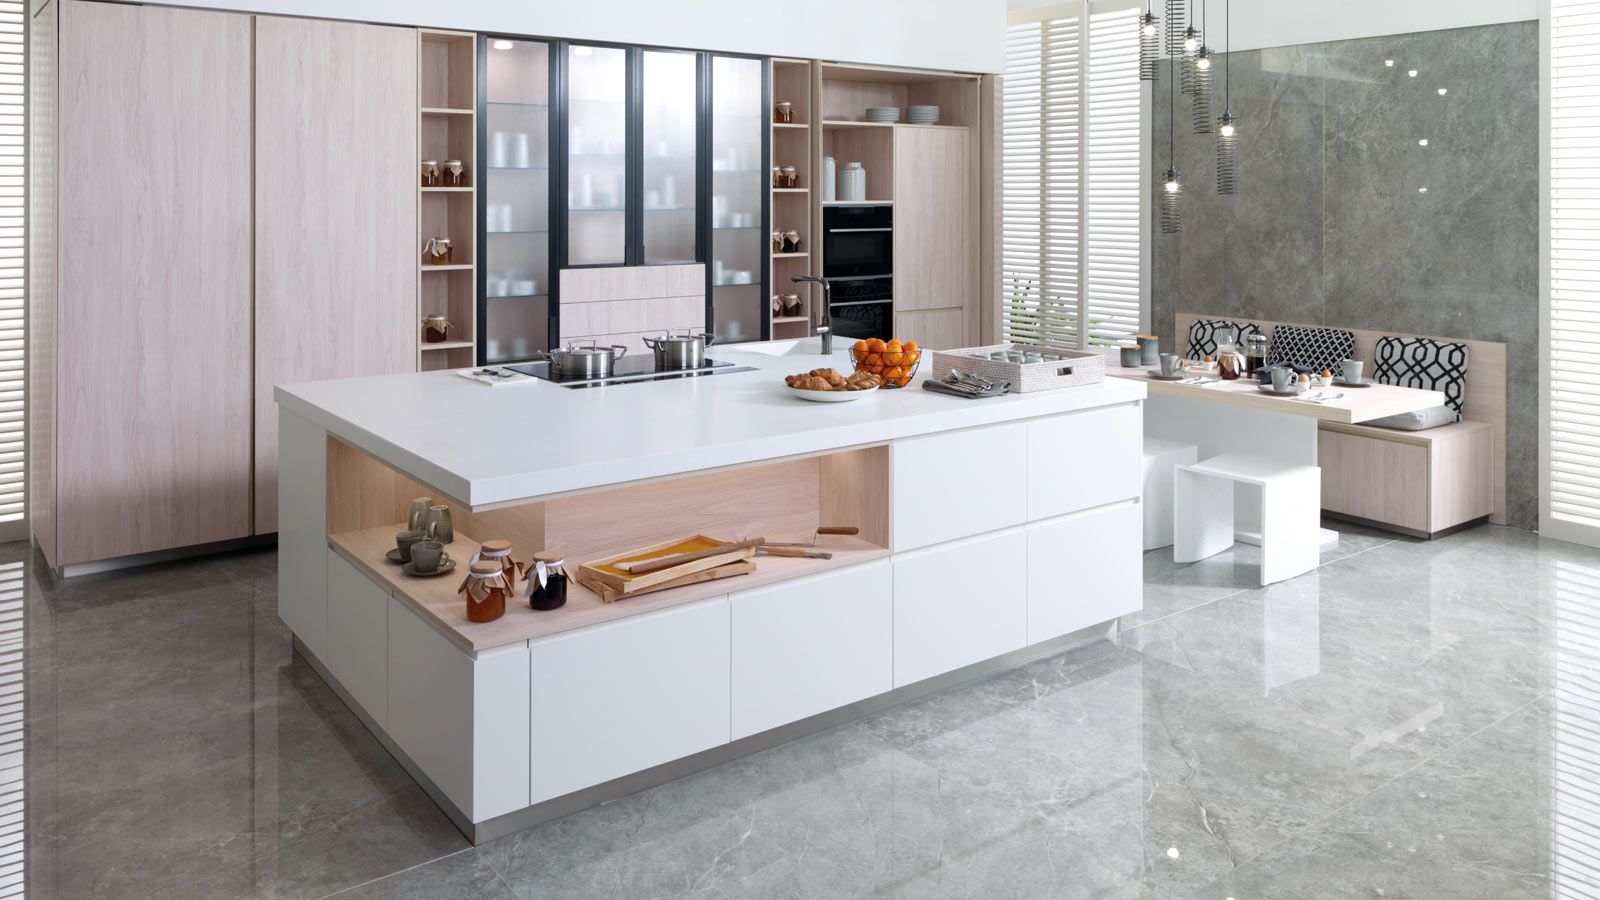 Safer and more hygienic kitchens to combat COVID-19